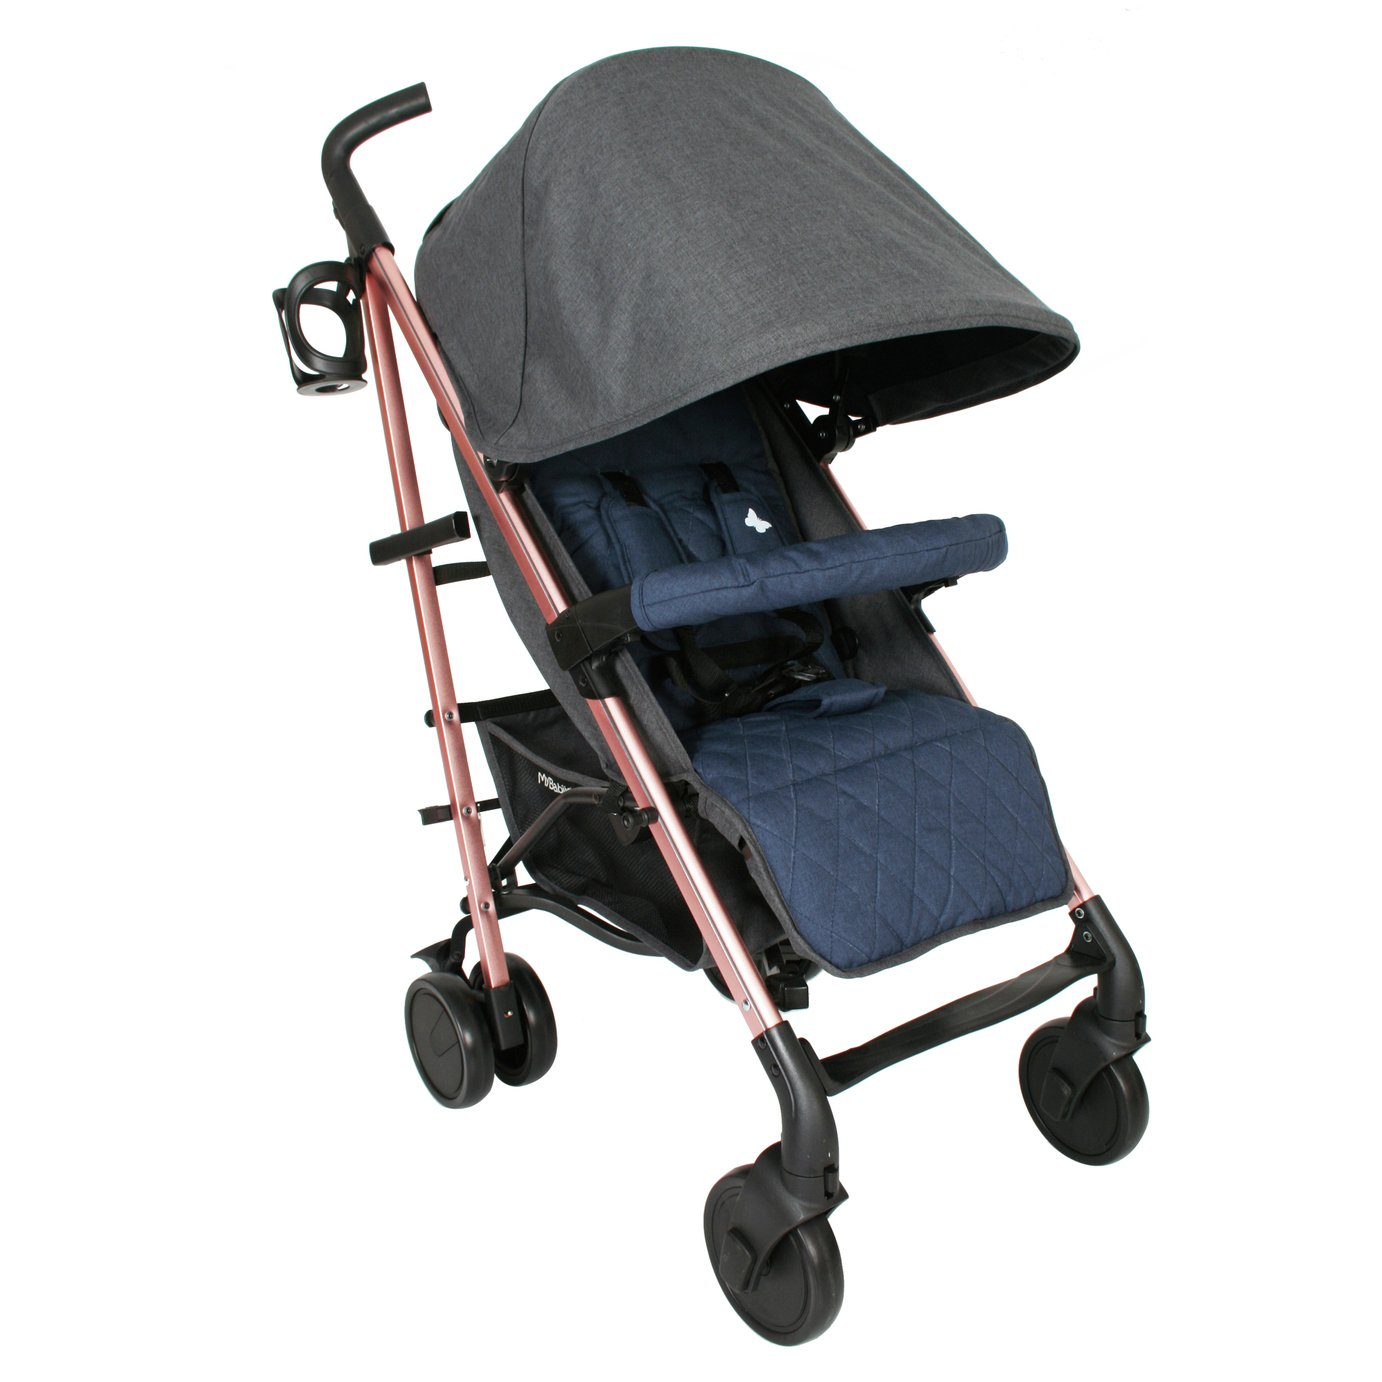 3 Wheel Prams Argos Joie Brisk Lx Stroller Pavement Grey At Argos